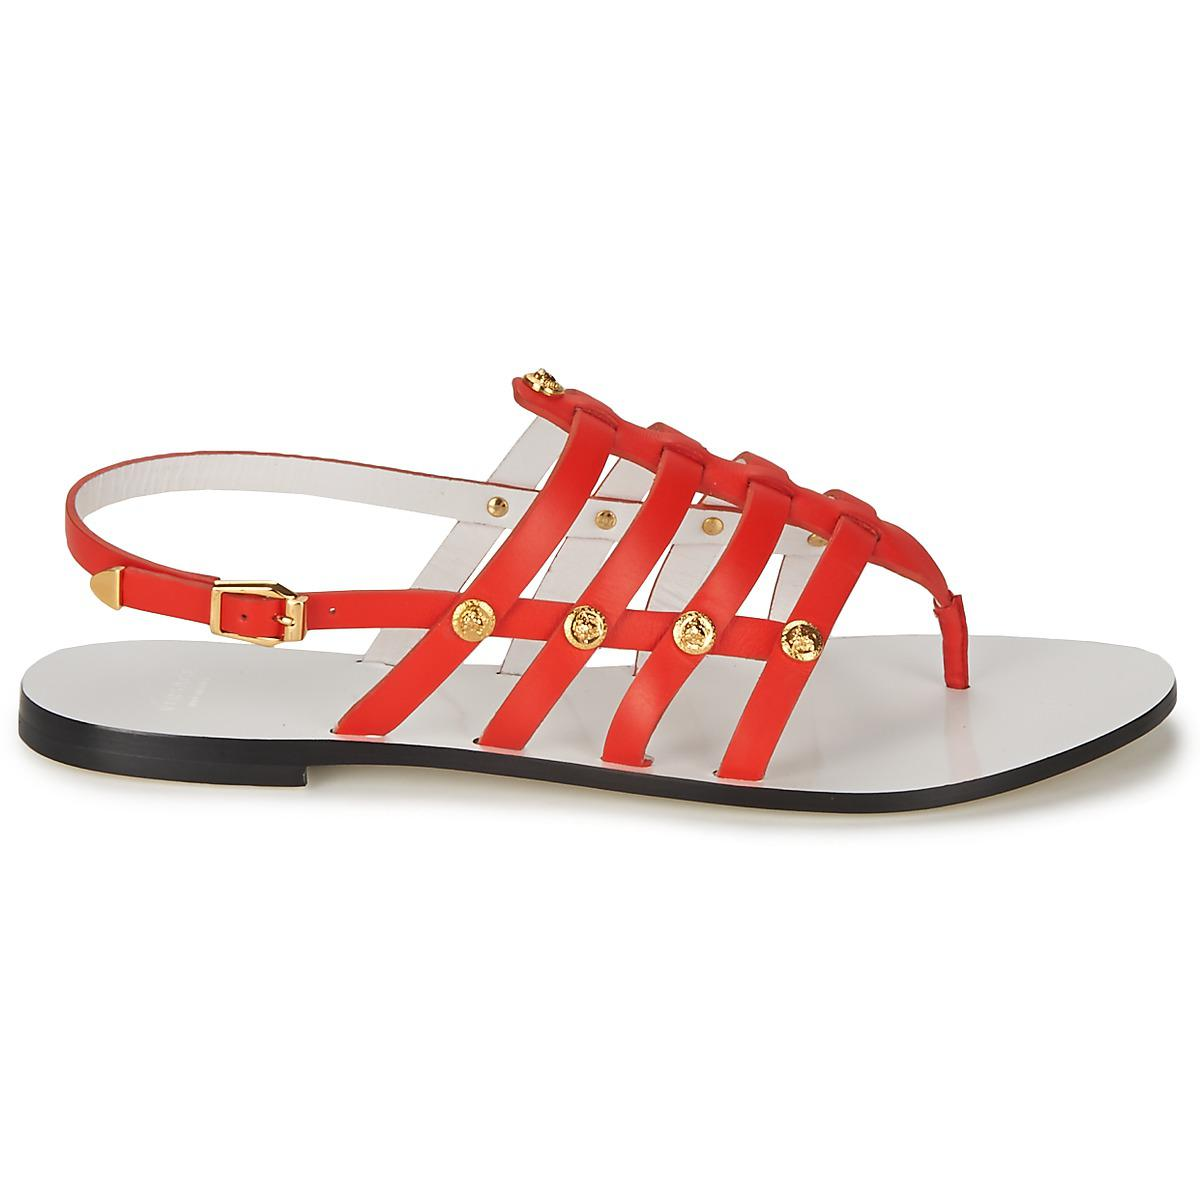 VERSACE DSL944C women's Sandals in Under 70 Dollars Sale Official Low Cost For Sale Discount Footlocker Pictures Sale Get To Buy 65iZI7Bov